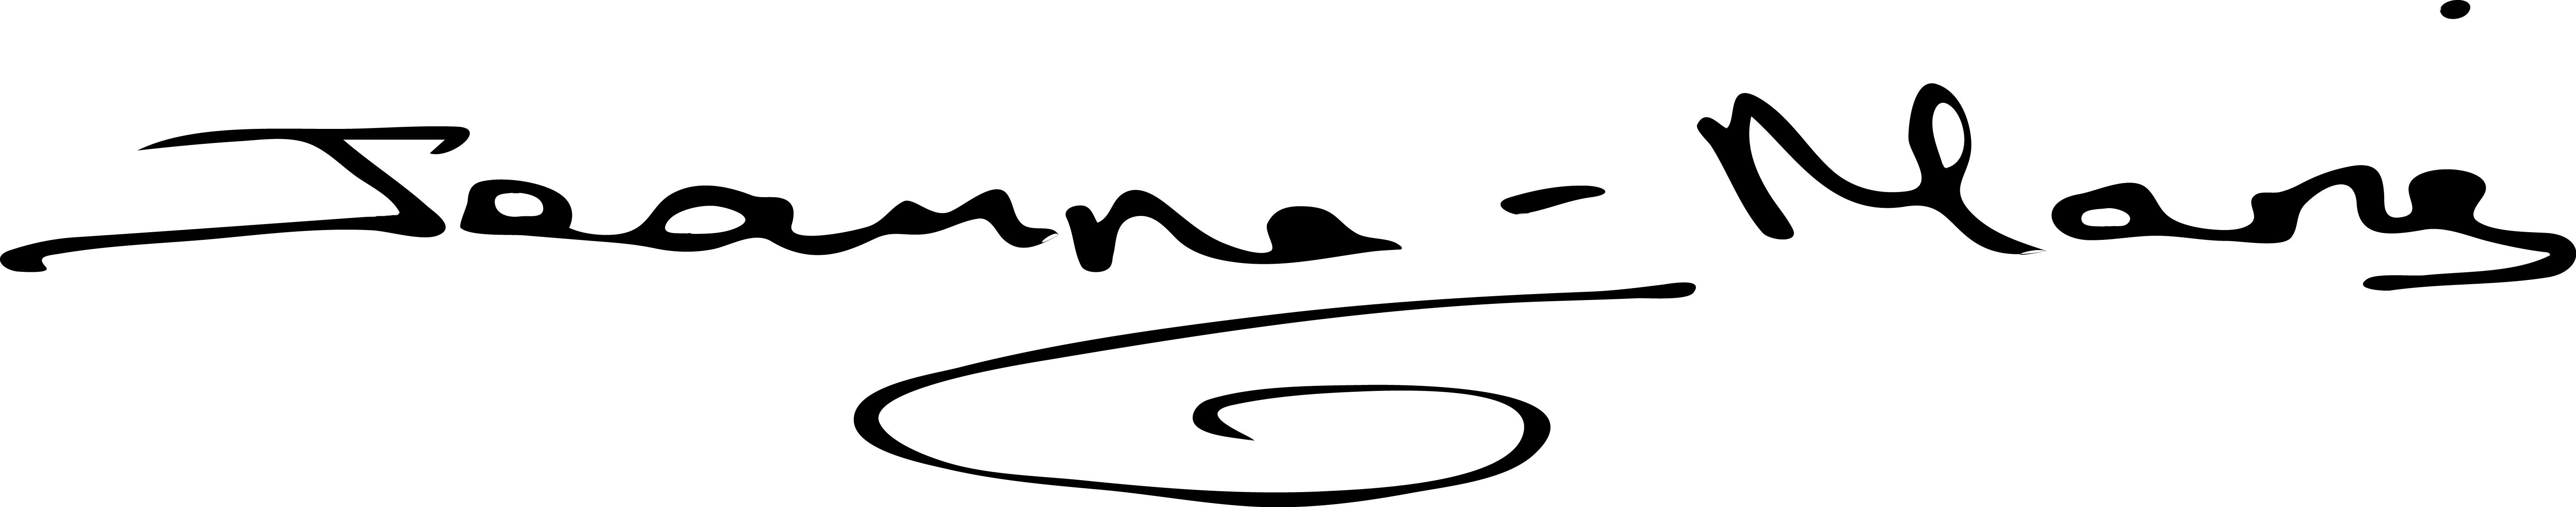 Jeanne-Marie Willems-Oliver's Signature